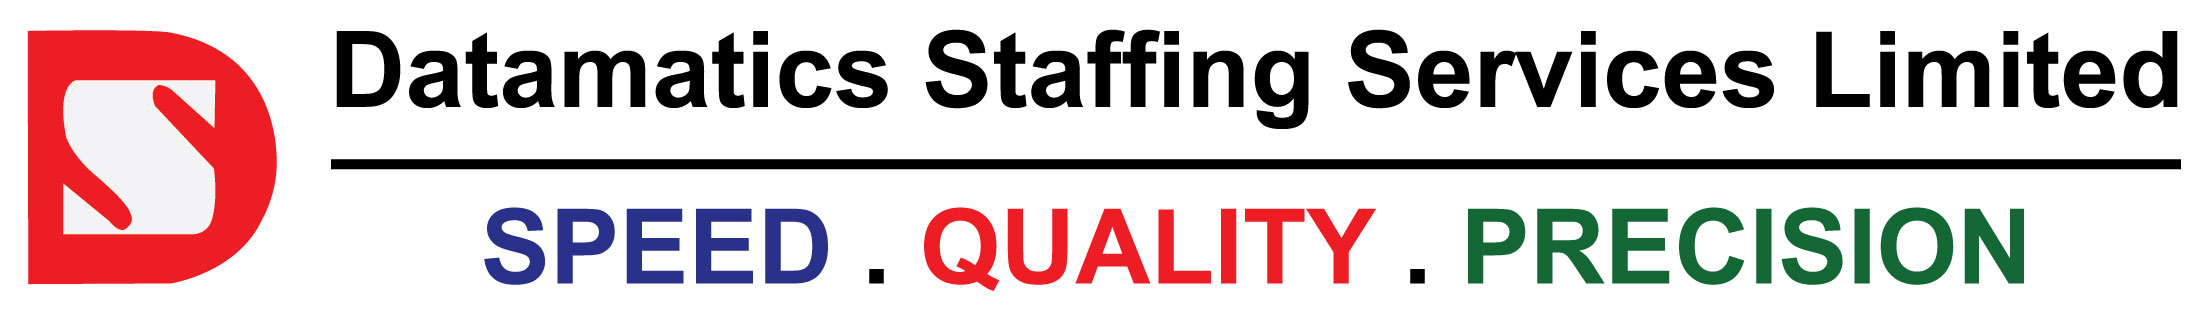 Datamatics Staffing Services